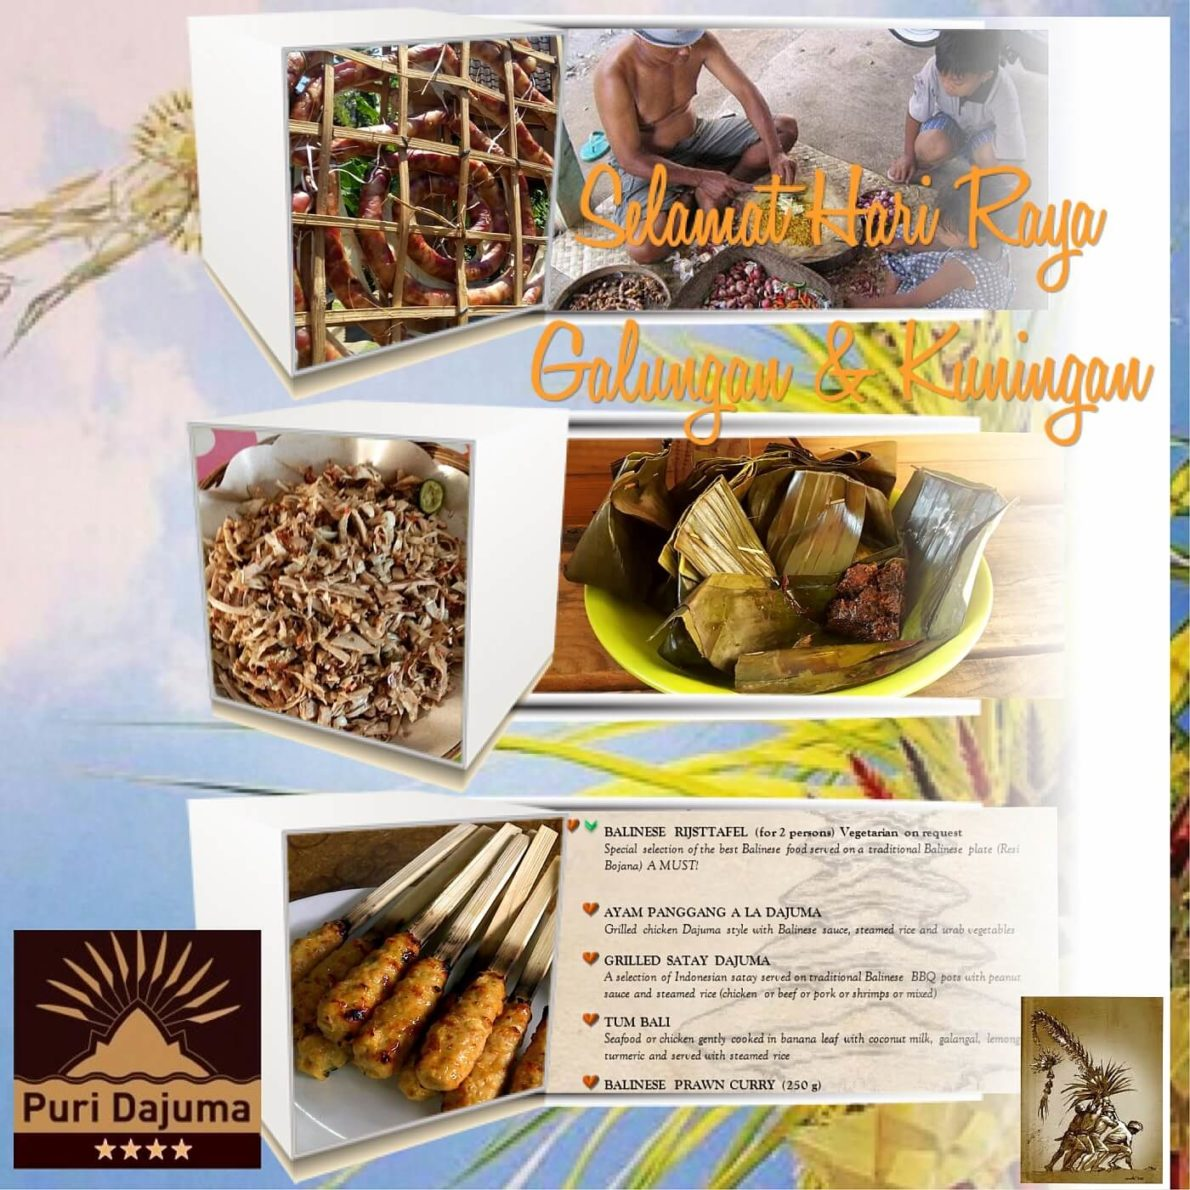 HAPPY GALUNGAN & KUNIGAN! Puri Dajuma, Beach Eco-Resort & Spa, West Bali